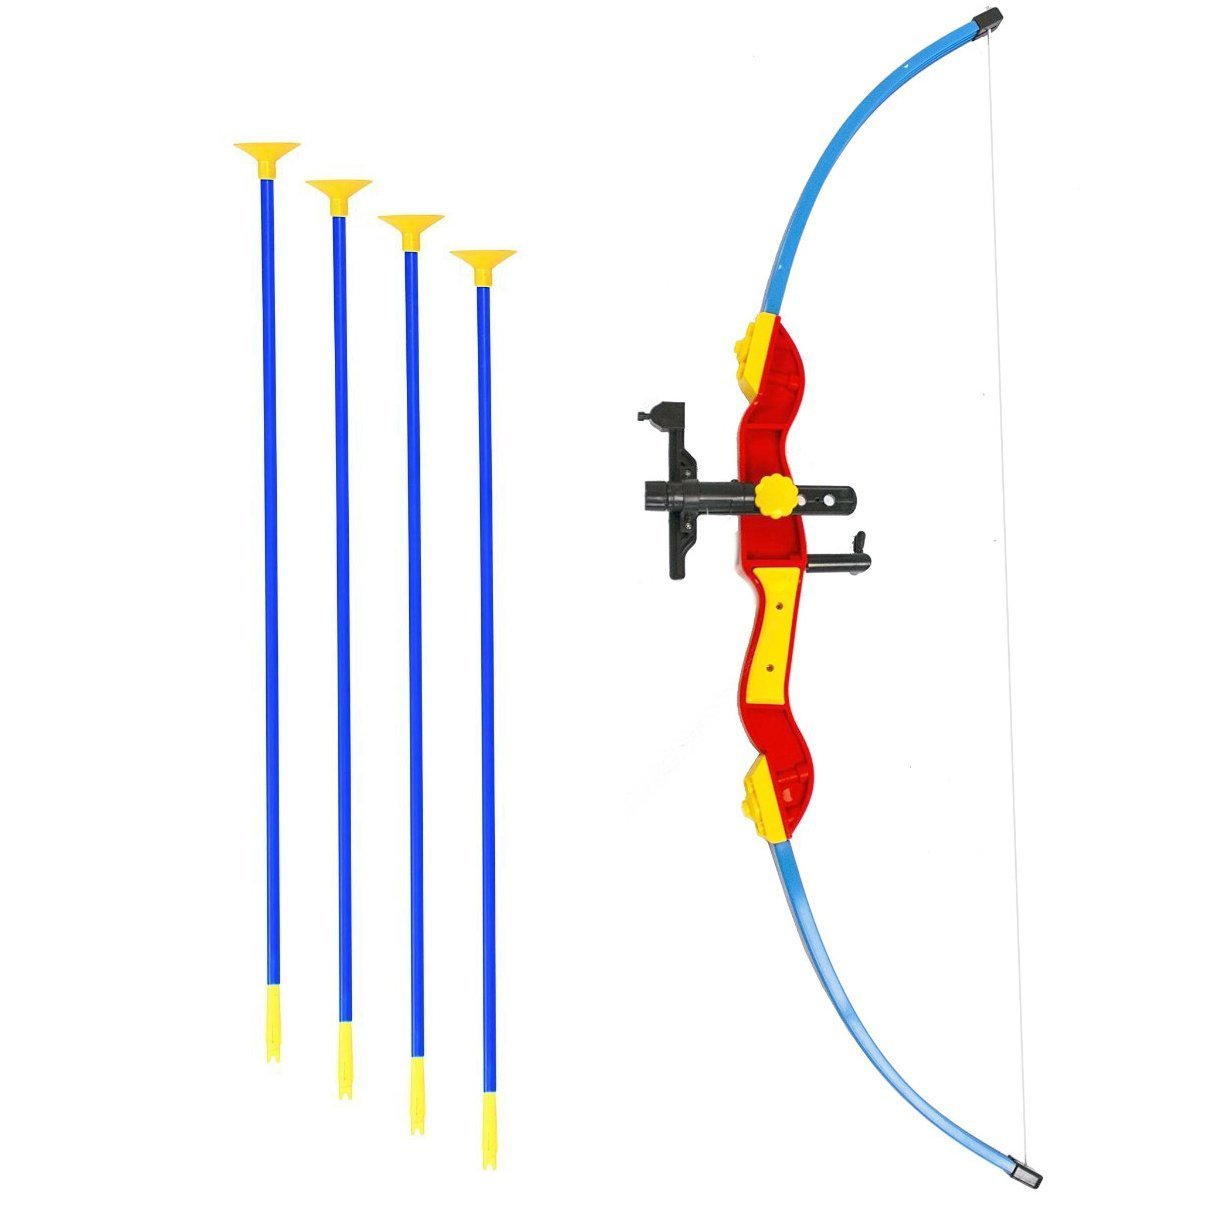 """Toy Bow & Arrow for kids, Archery Bow 32"""" Long, Suction Arrow 22"""", Pretend Play, Soft Power Safe Children Game Set - Mulit-Color [USA Warranty 100% Guaranteed]"""